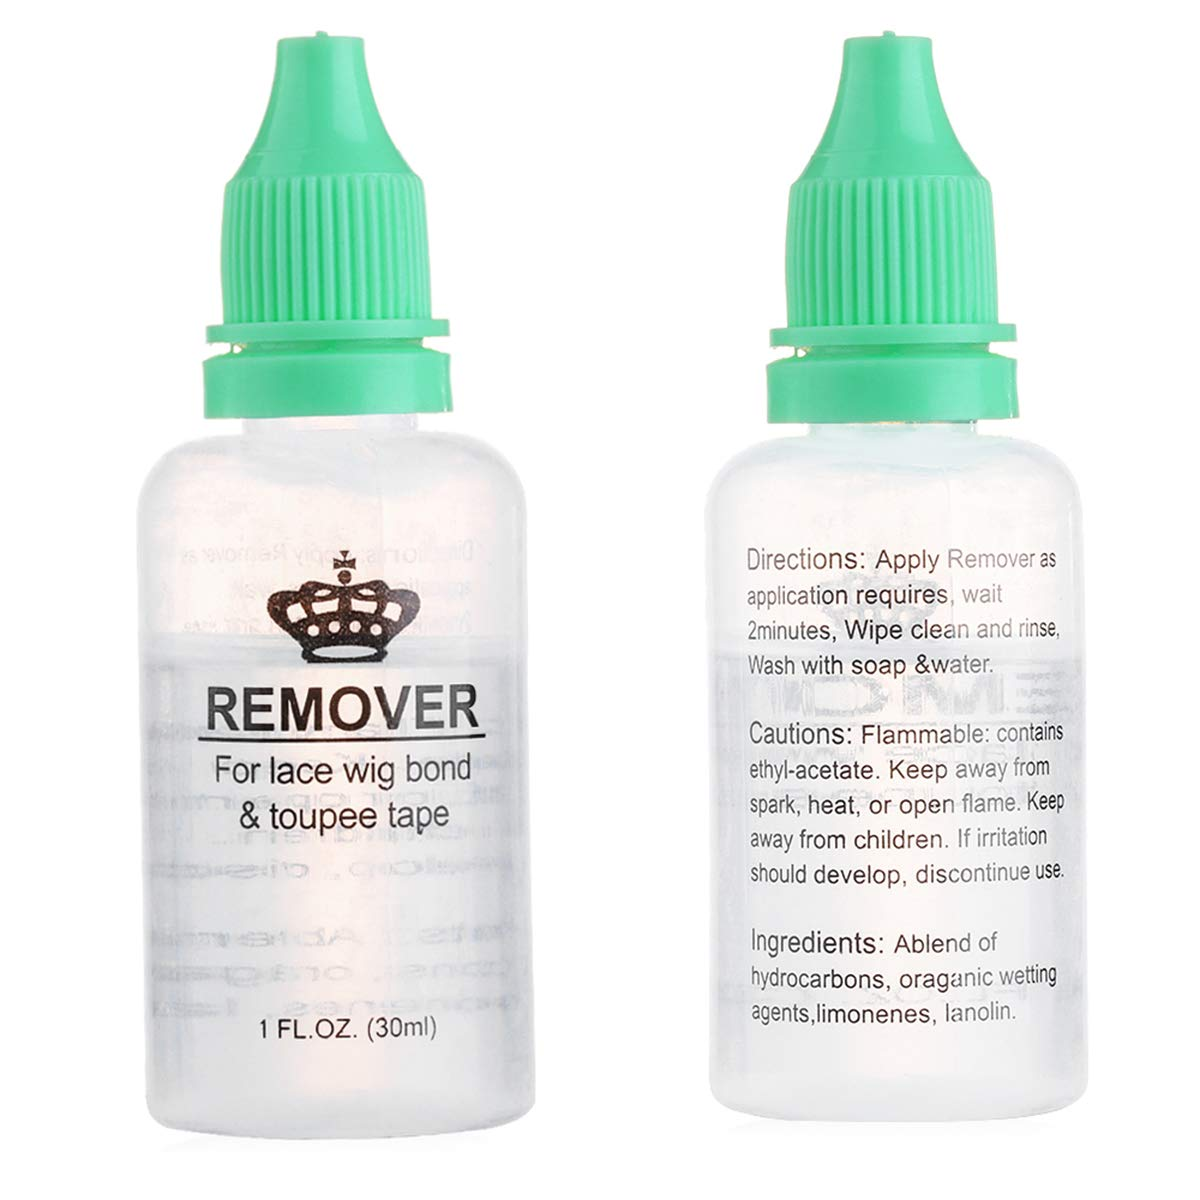 Pro Wig Hair Glue Adhesives Remover Fast Remove Hair Extension Tape For Lace Wig Bond Toupee Accessory 1 Bottle 30ml 100% Original Adhesives